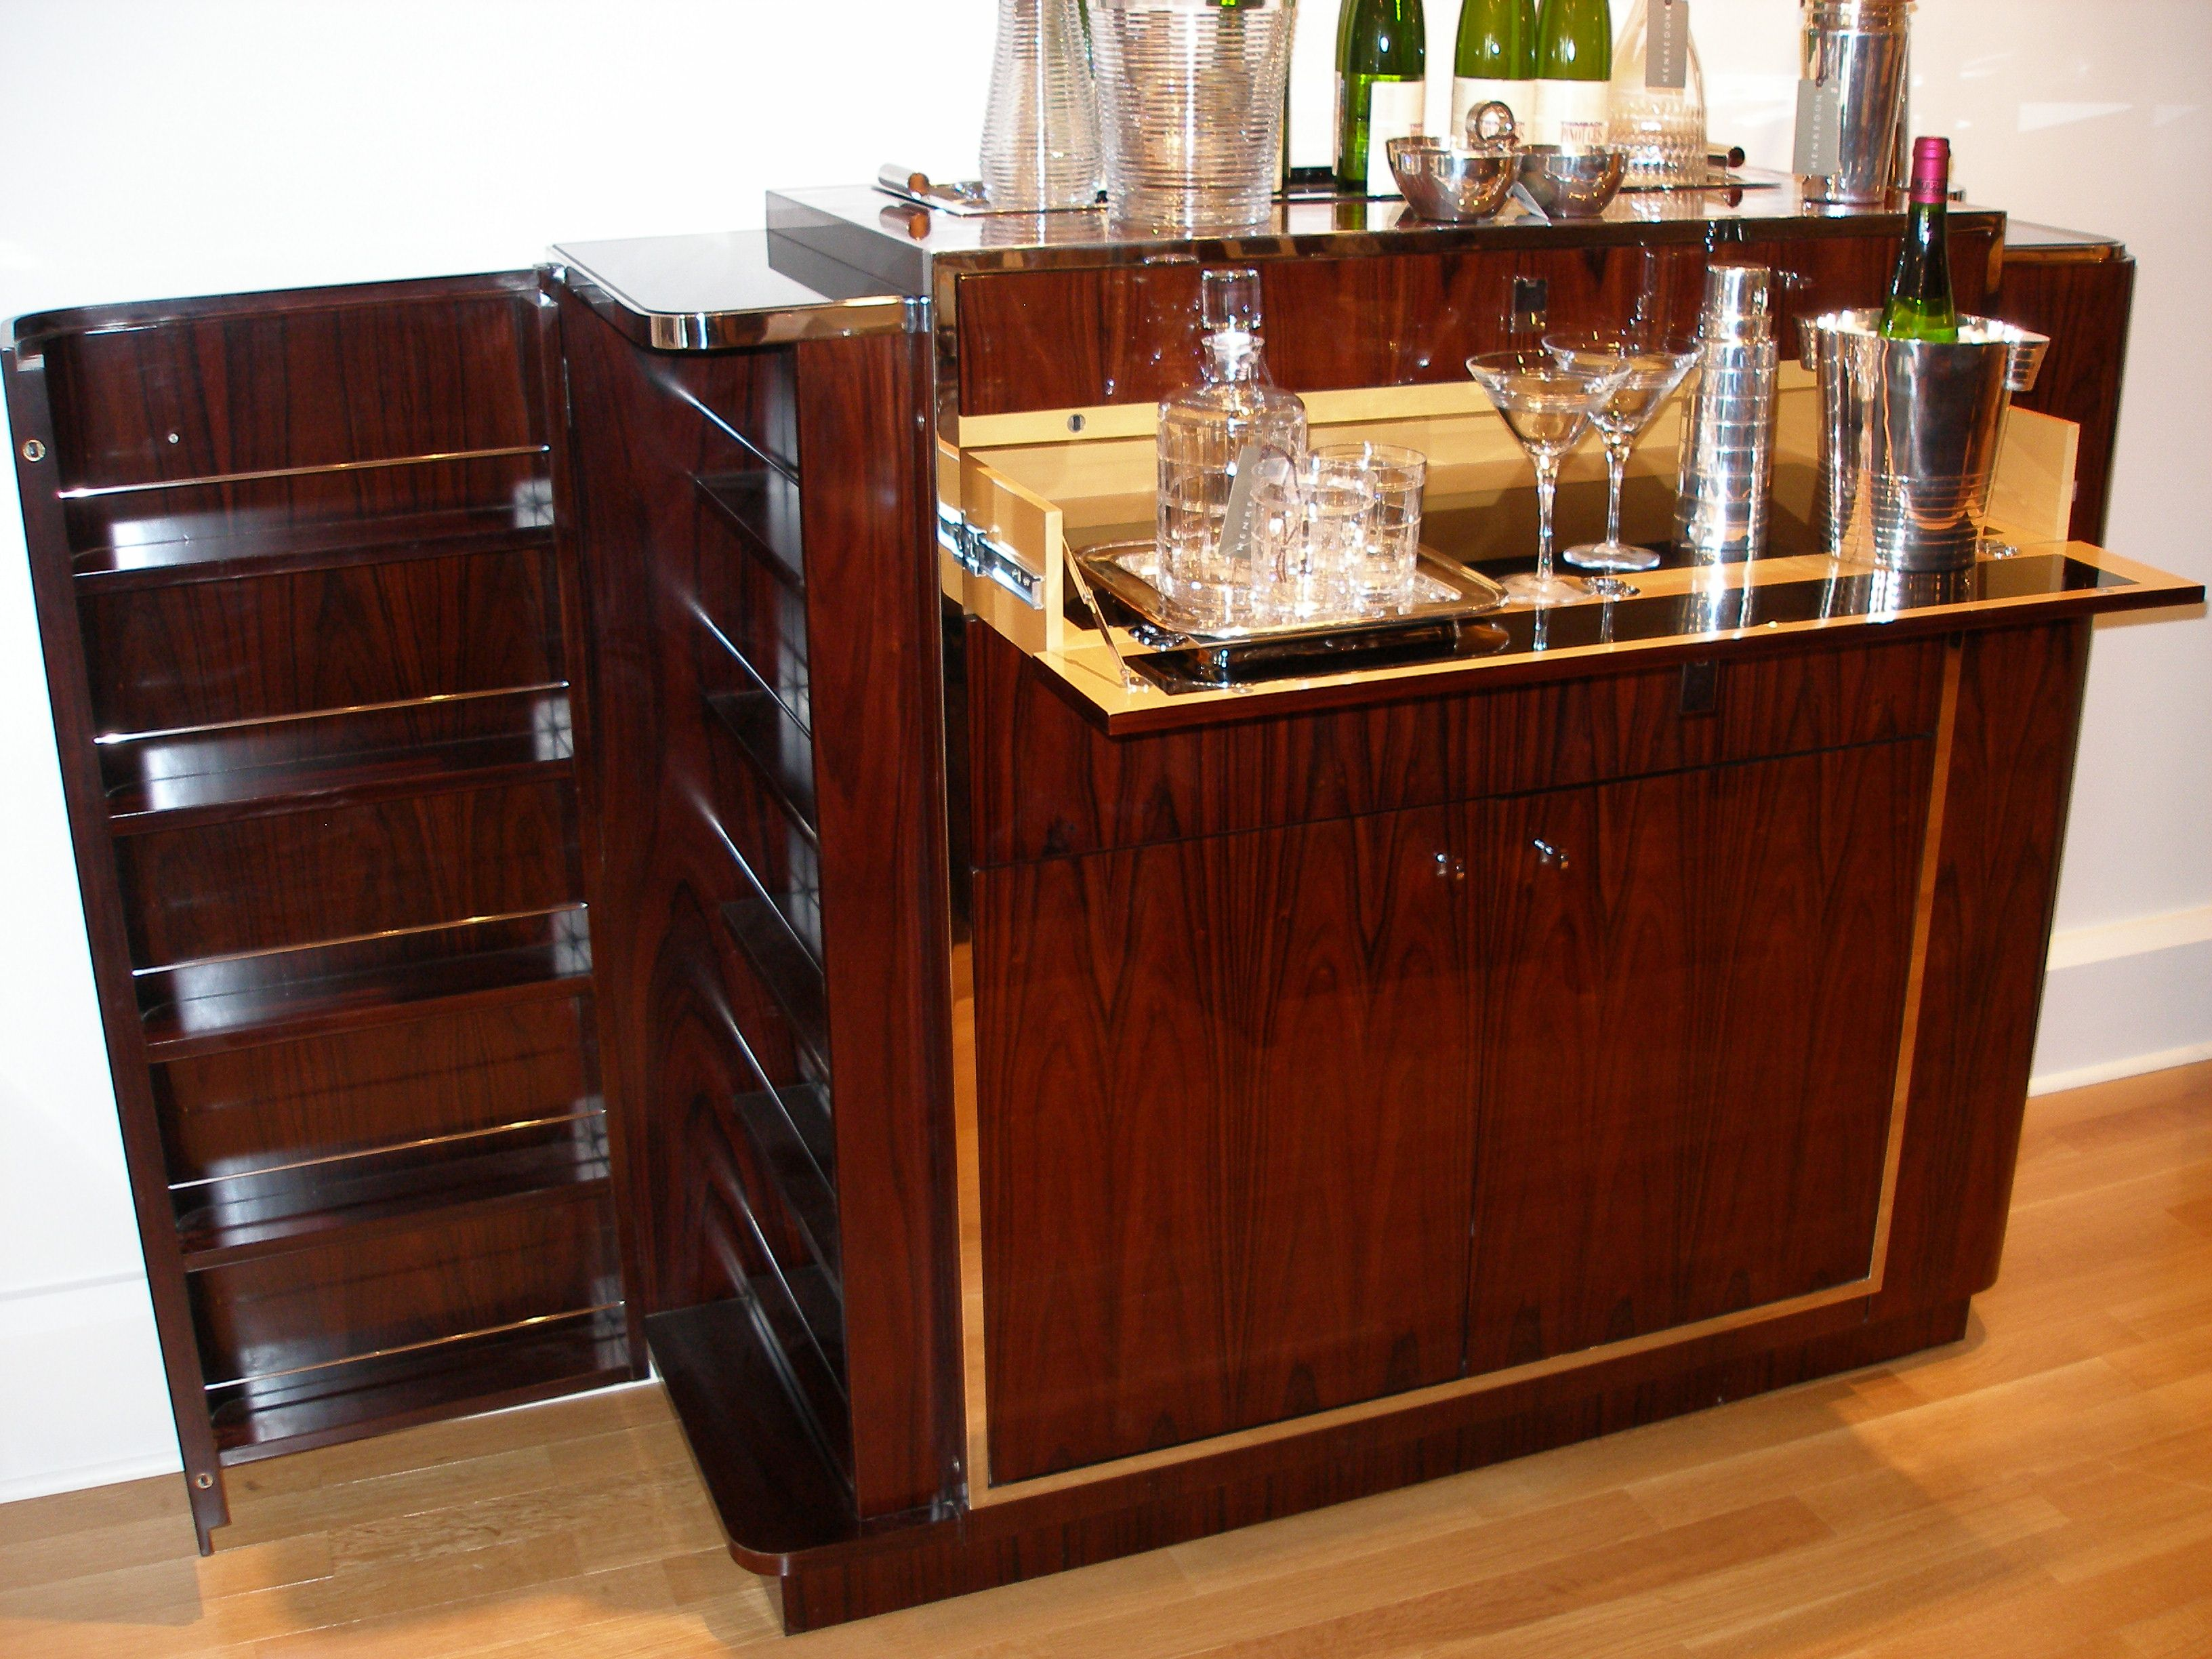 Choosing Best Bar Cabinet Furniture For Make Excellent Interior Room Decor Awesome Tuscany And Wine Design Ideas